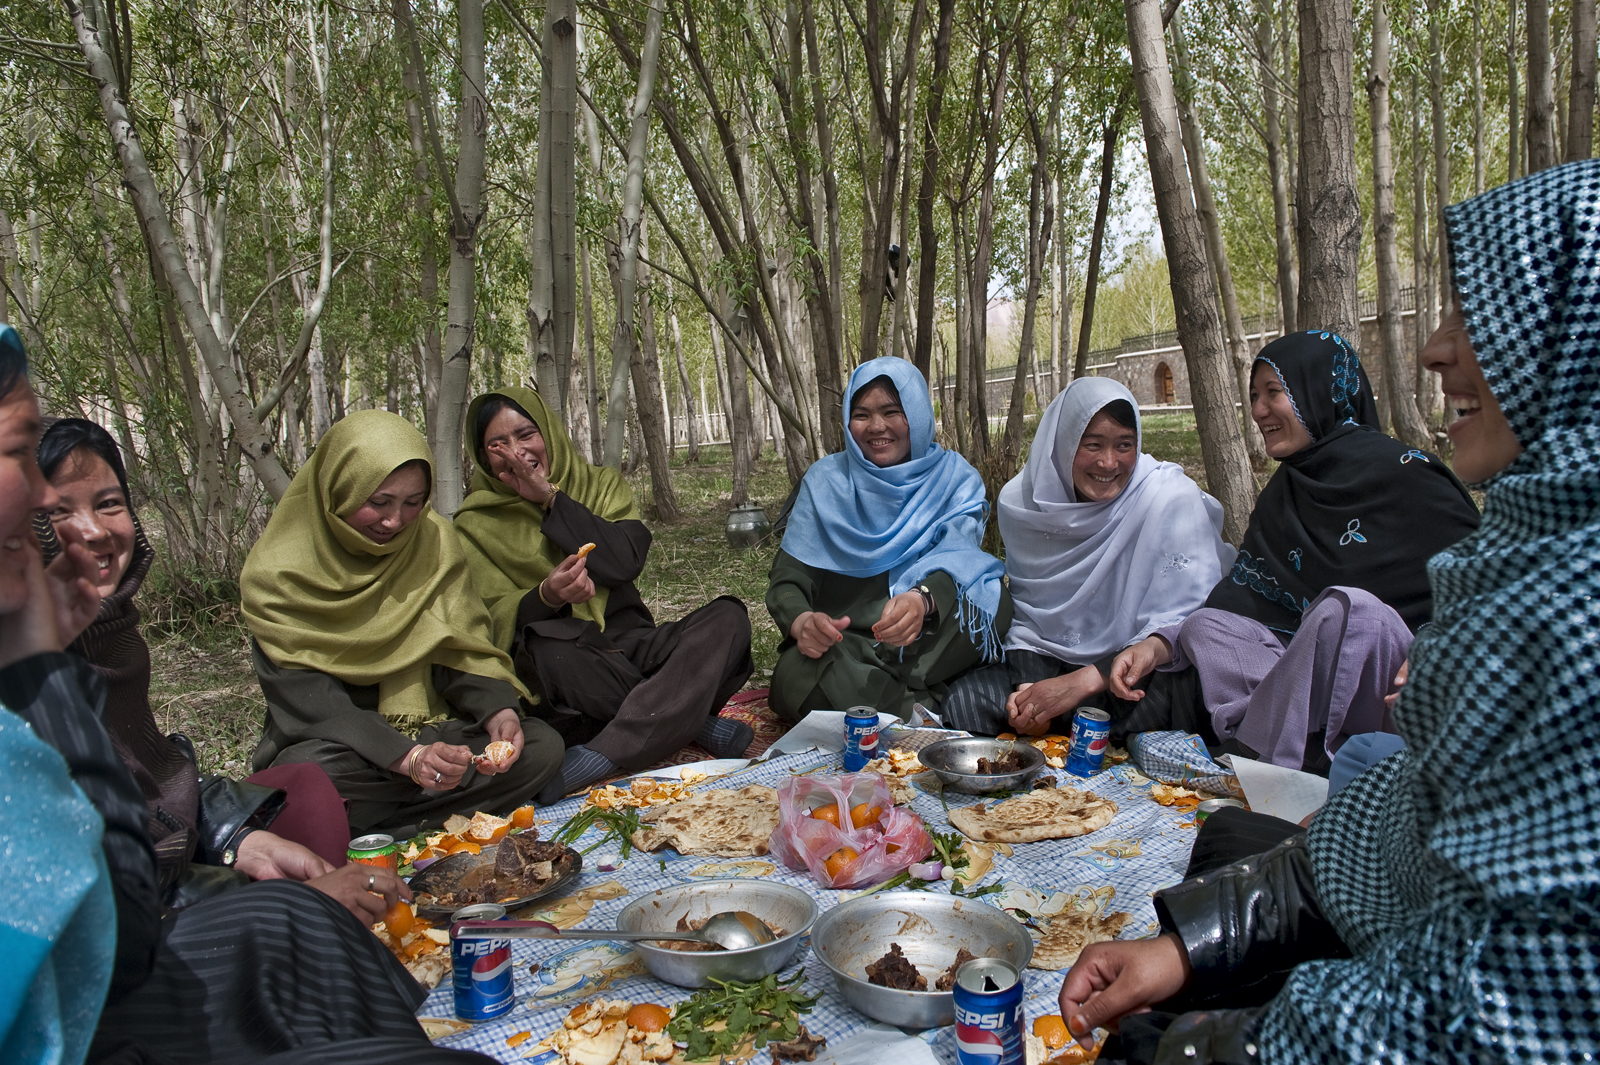 Young women, many of them studying to become teachers, relax in the Women's Garden of a park intended for families outside the city of Bamian. Established by the province's female governor, Habiba Sarabi, the garden provides a place for Afghan women to enjoy the outdoors. These picnickers gather for a typical Afghan feast of flatbread, goat, lamb, and fruit—with a hint of Western flavor in their choice of soda.